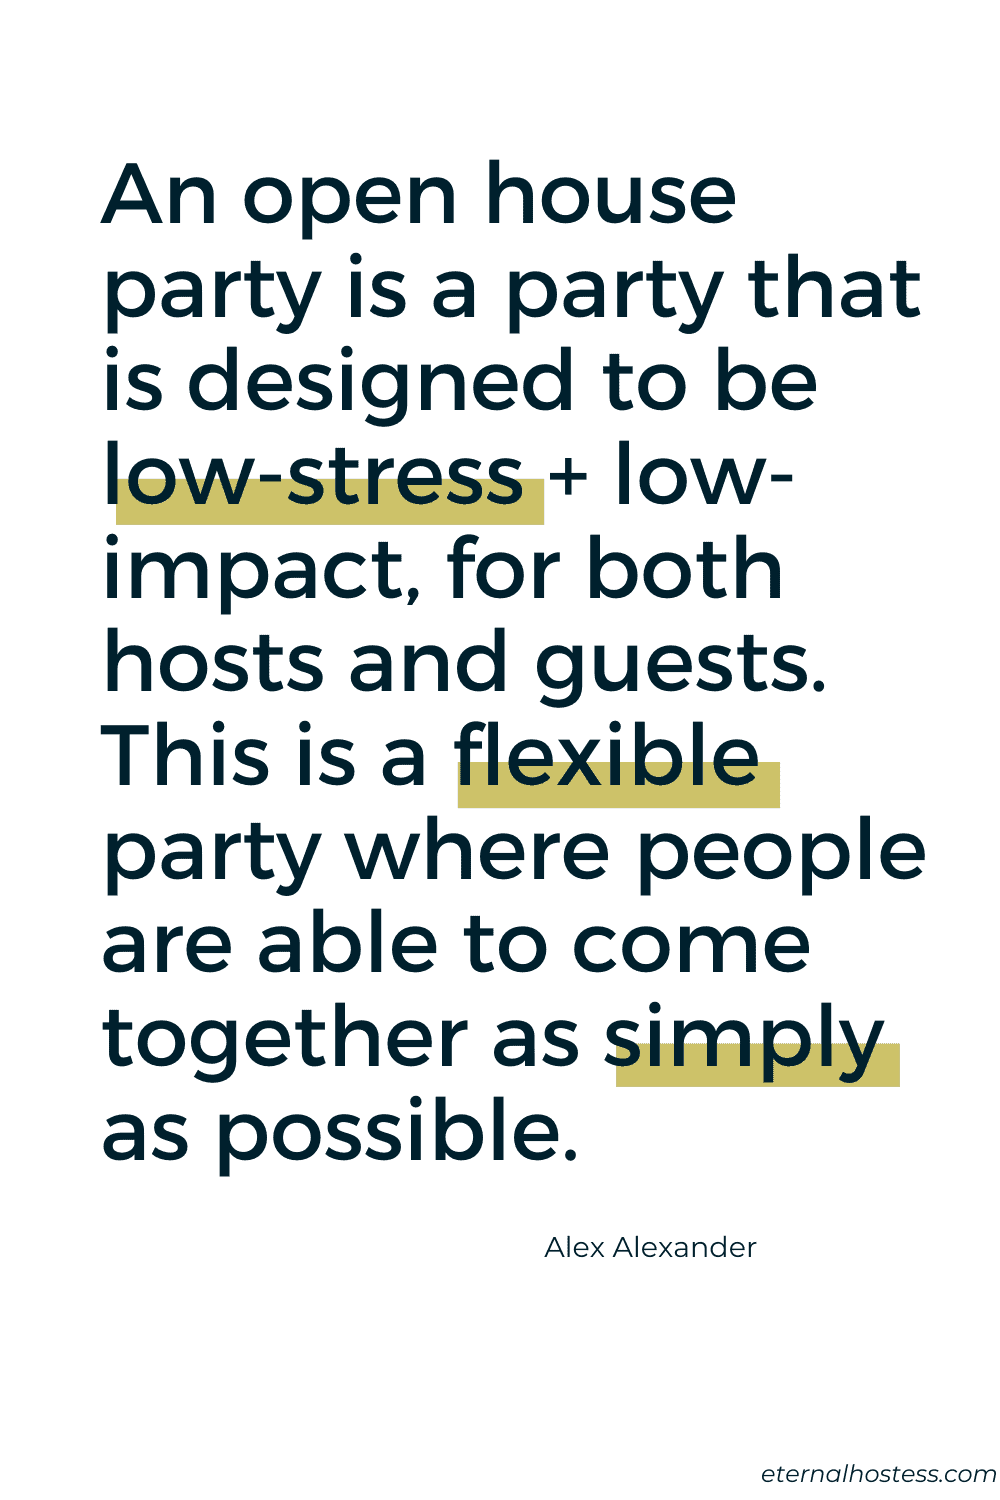 """Quote in bold blue text. Says """"An open hoiuse party is a party that is designed to be low-stress and low-impact for both hosts and guests. This is a flexible party where people come together as simply as possible."""""""